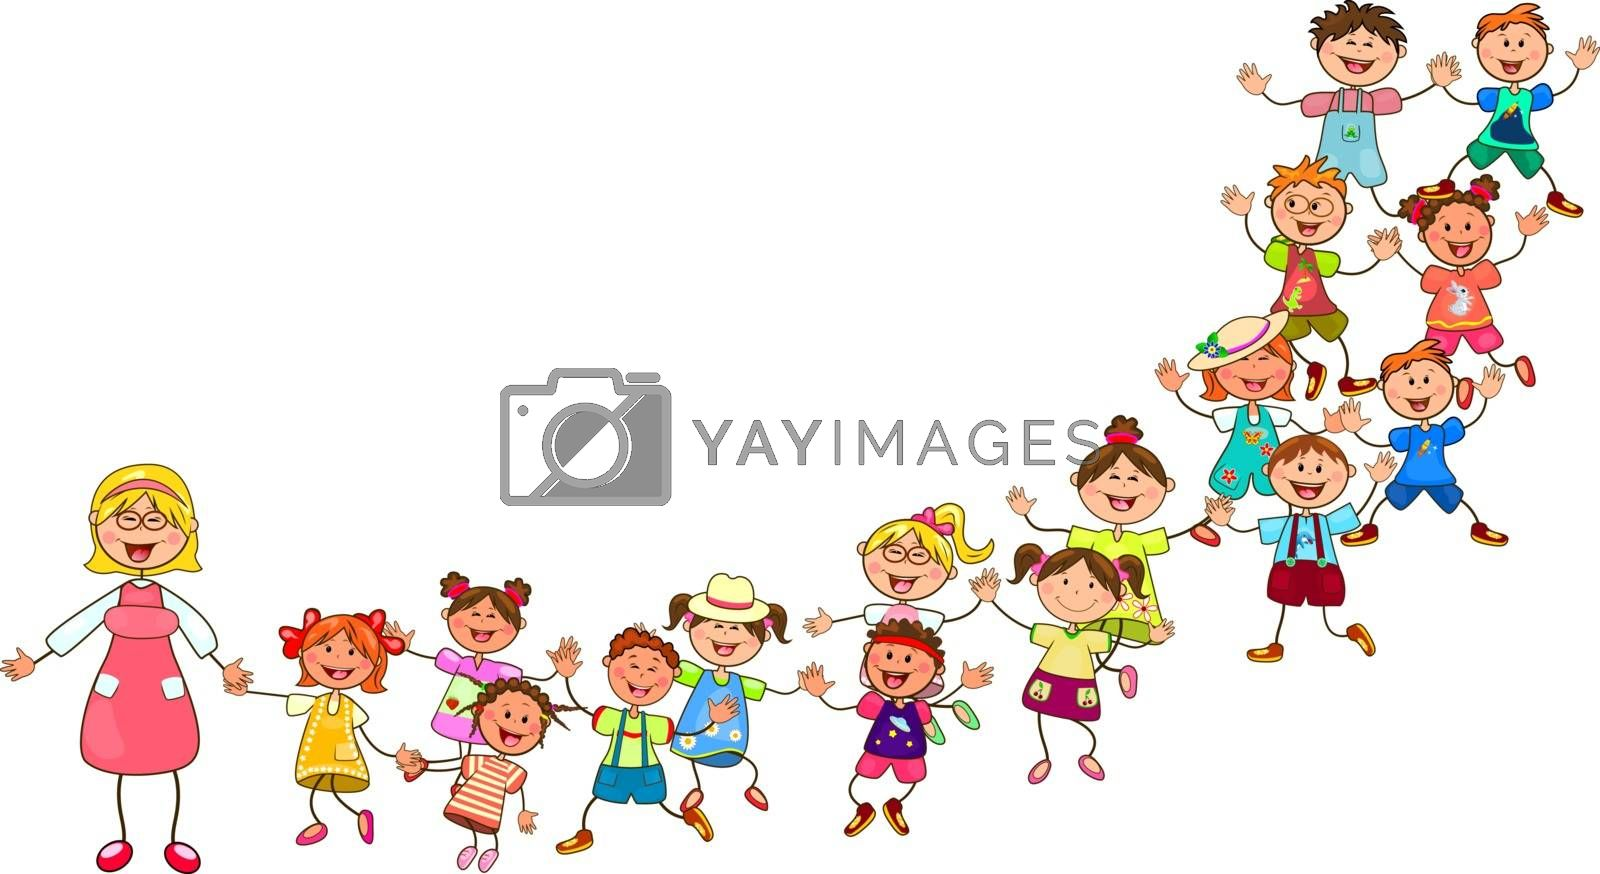 Joyful little kids and a teacher. A group of children with a teacher on a walk. Group of cheerful, smiling children on a white background.